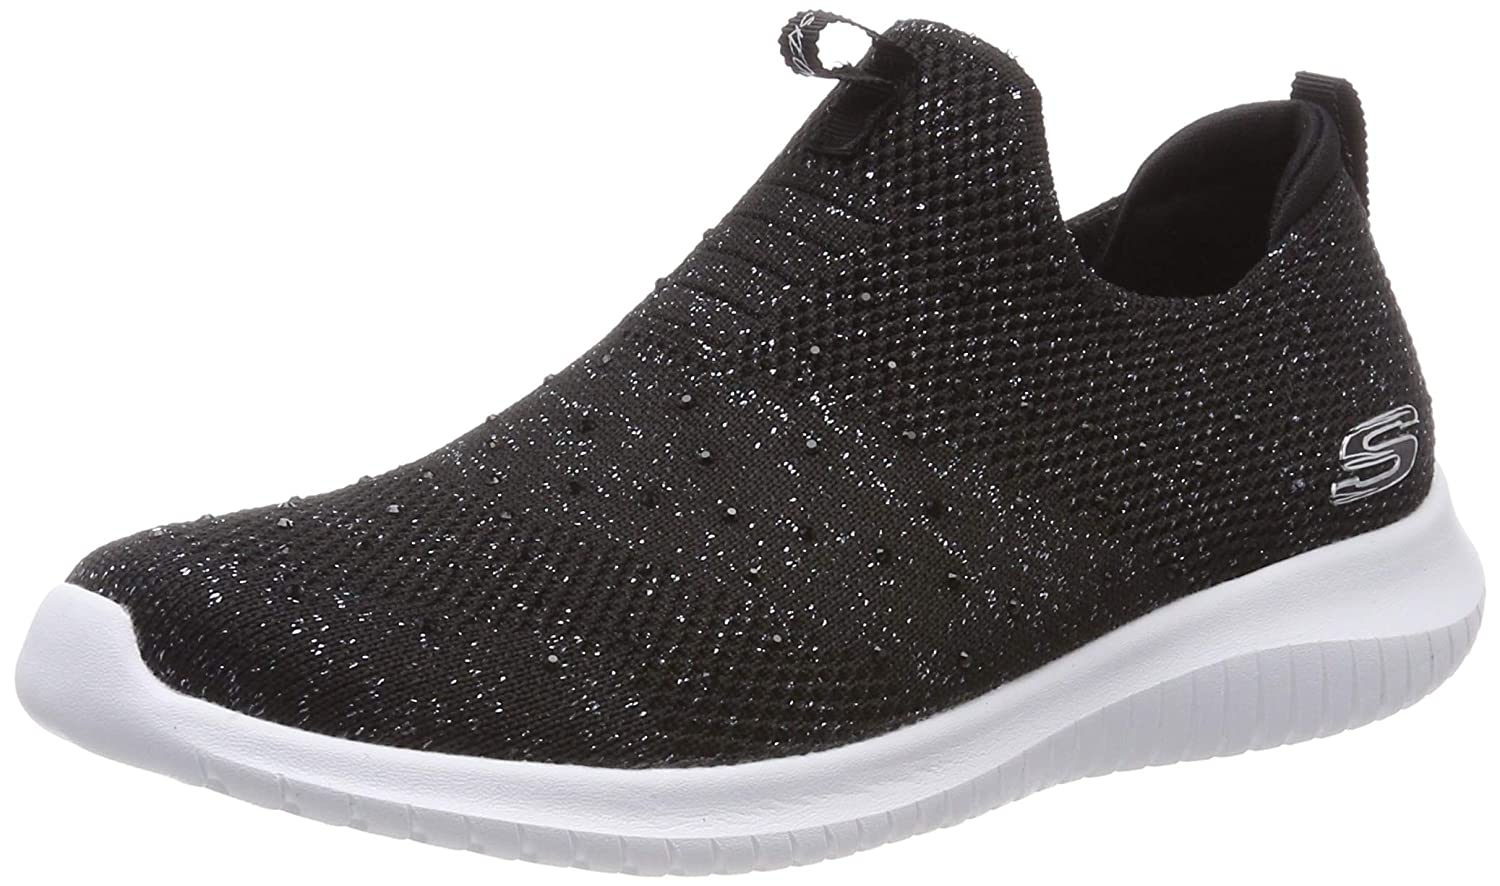 Ultra Flex-Thrive Up Sneakers at Amazon